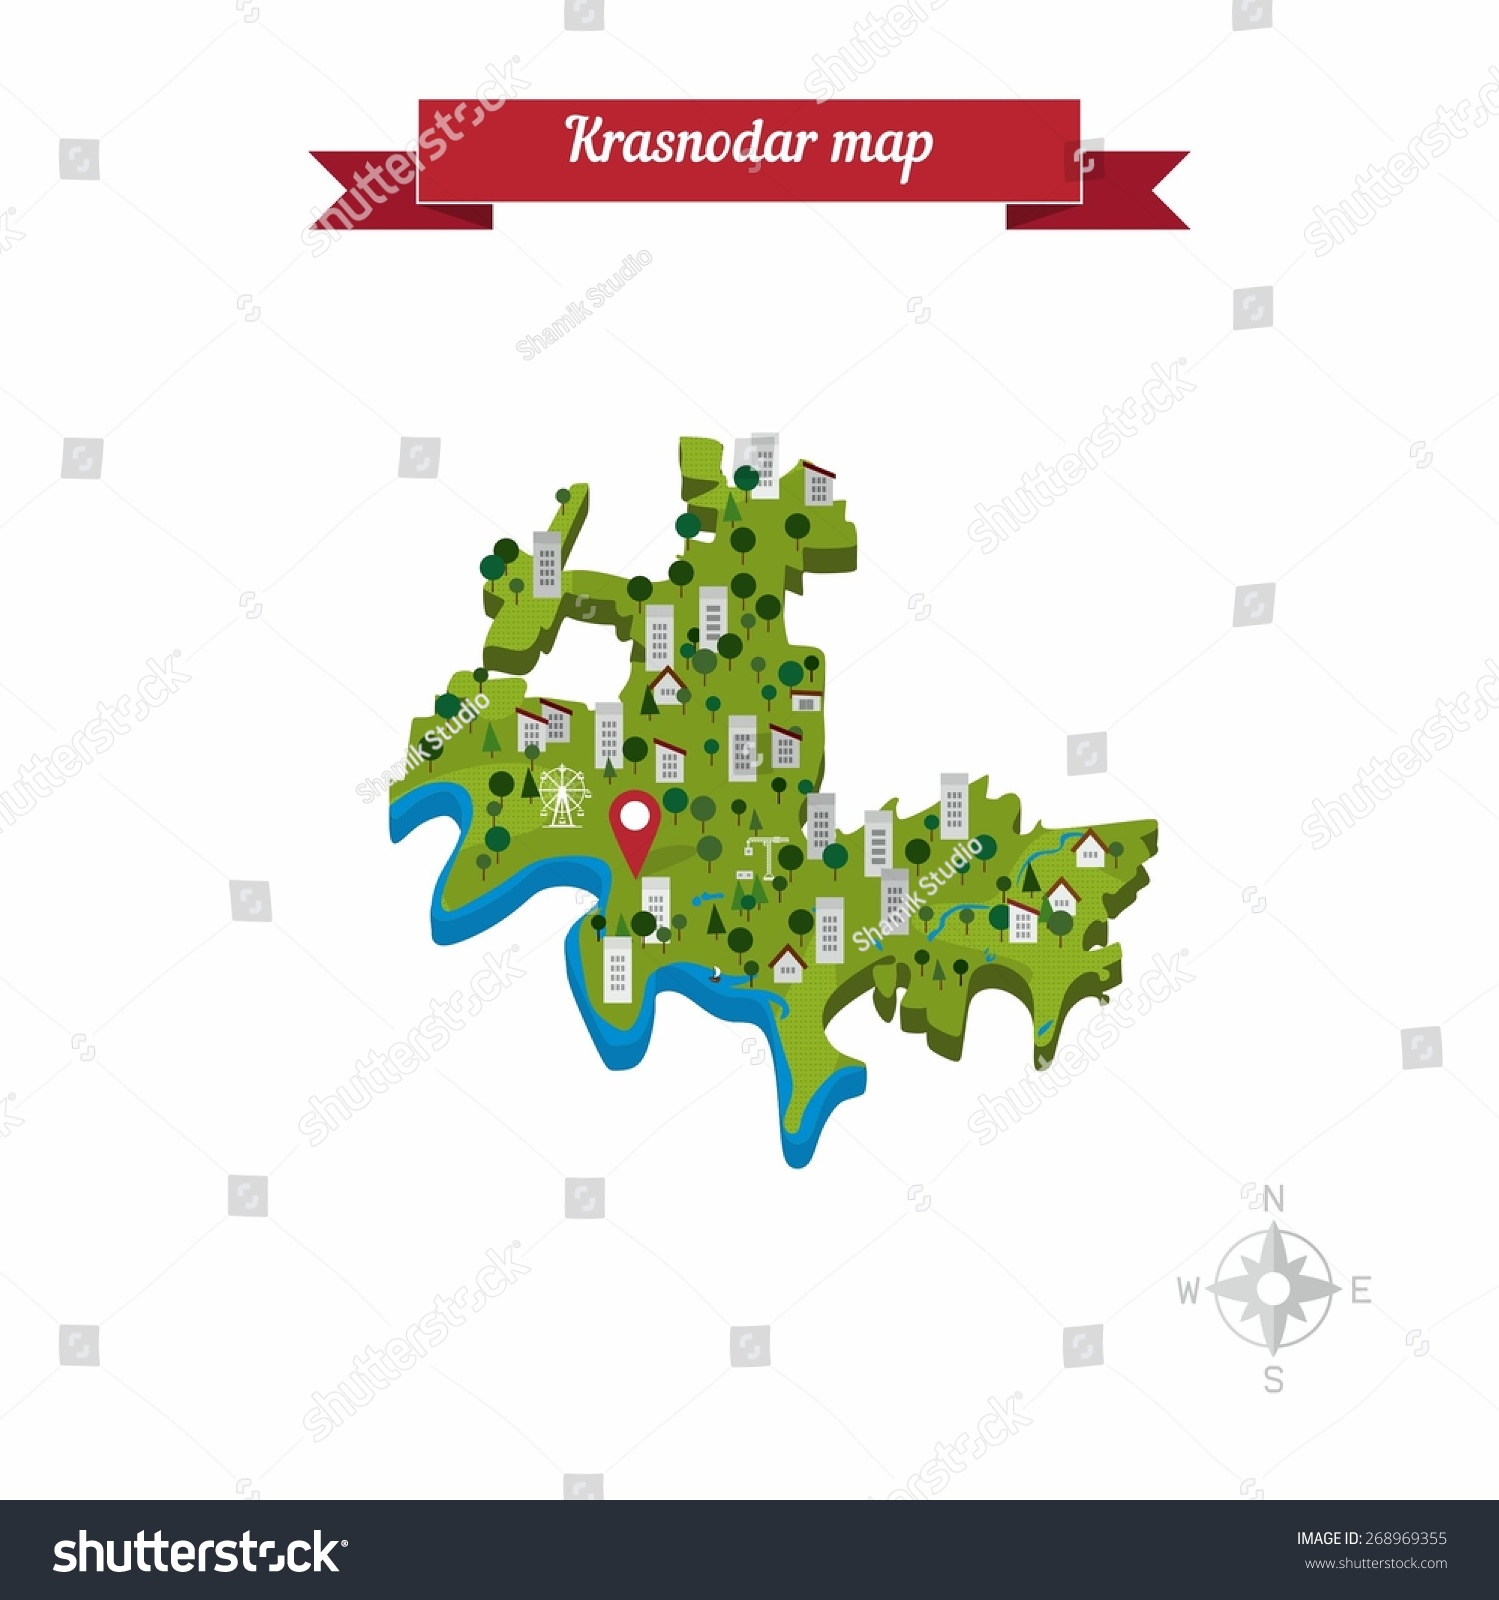 Krasnodar Russia Map Flat Style Design Stock Vector HD Royalty Free